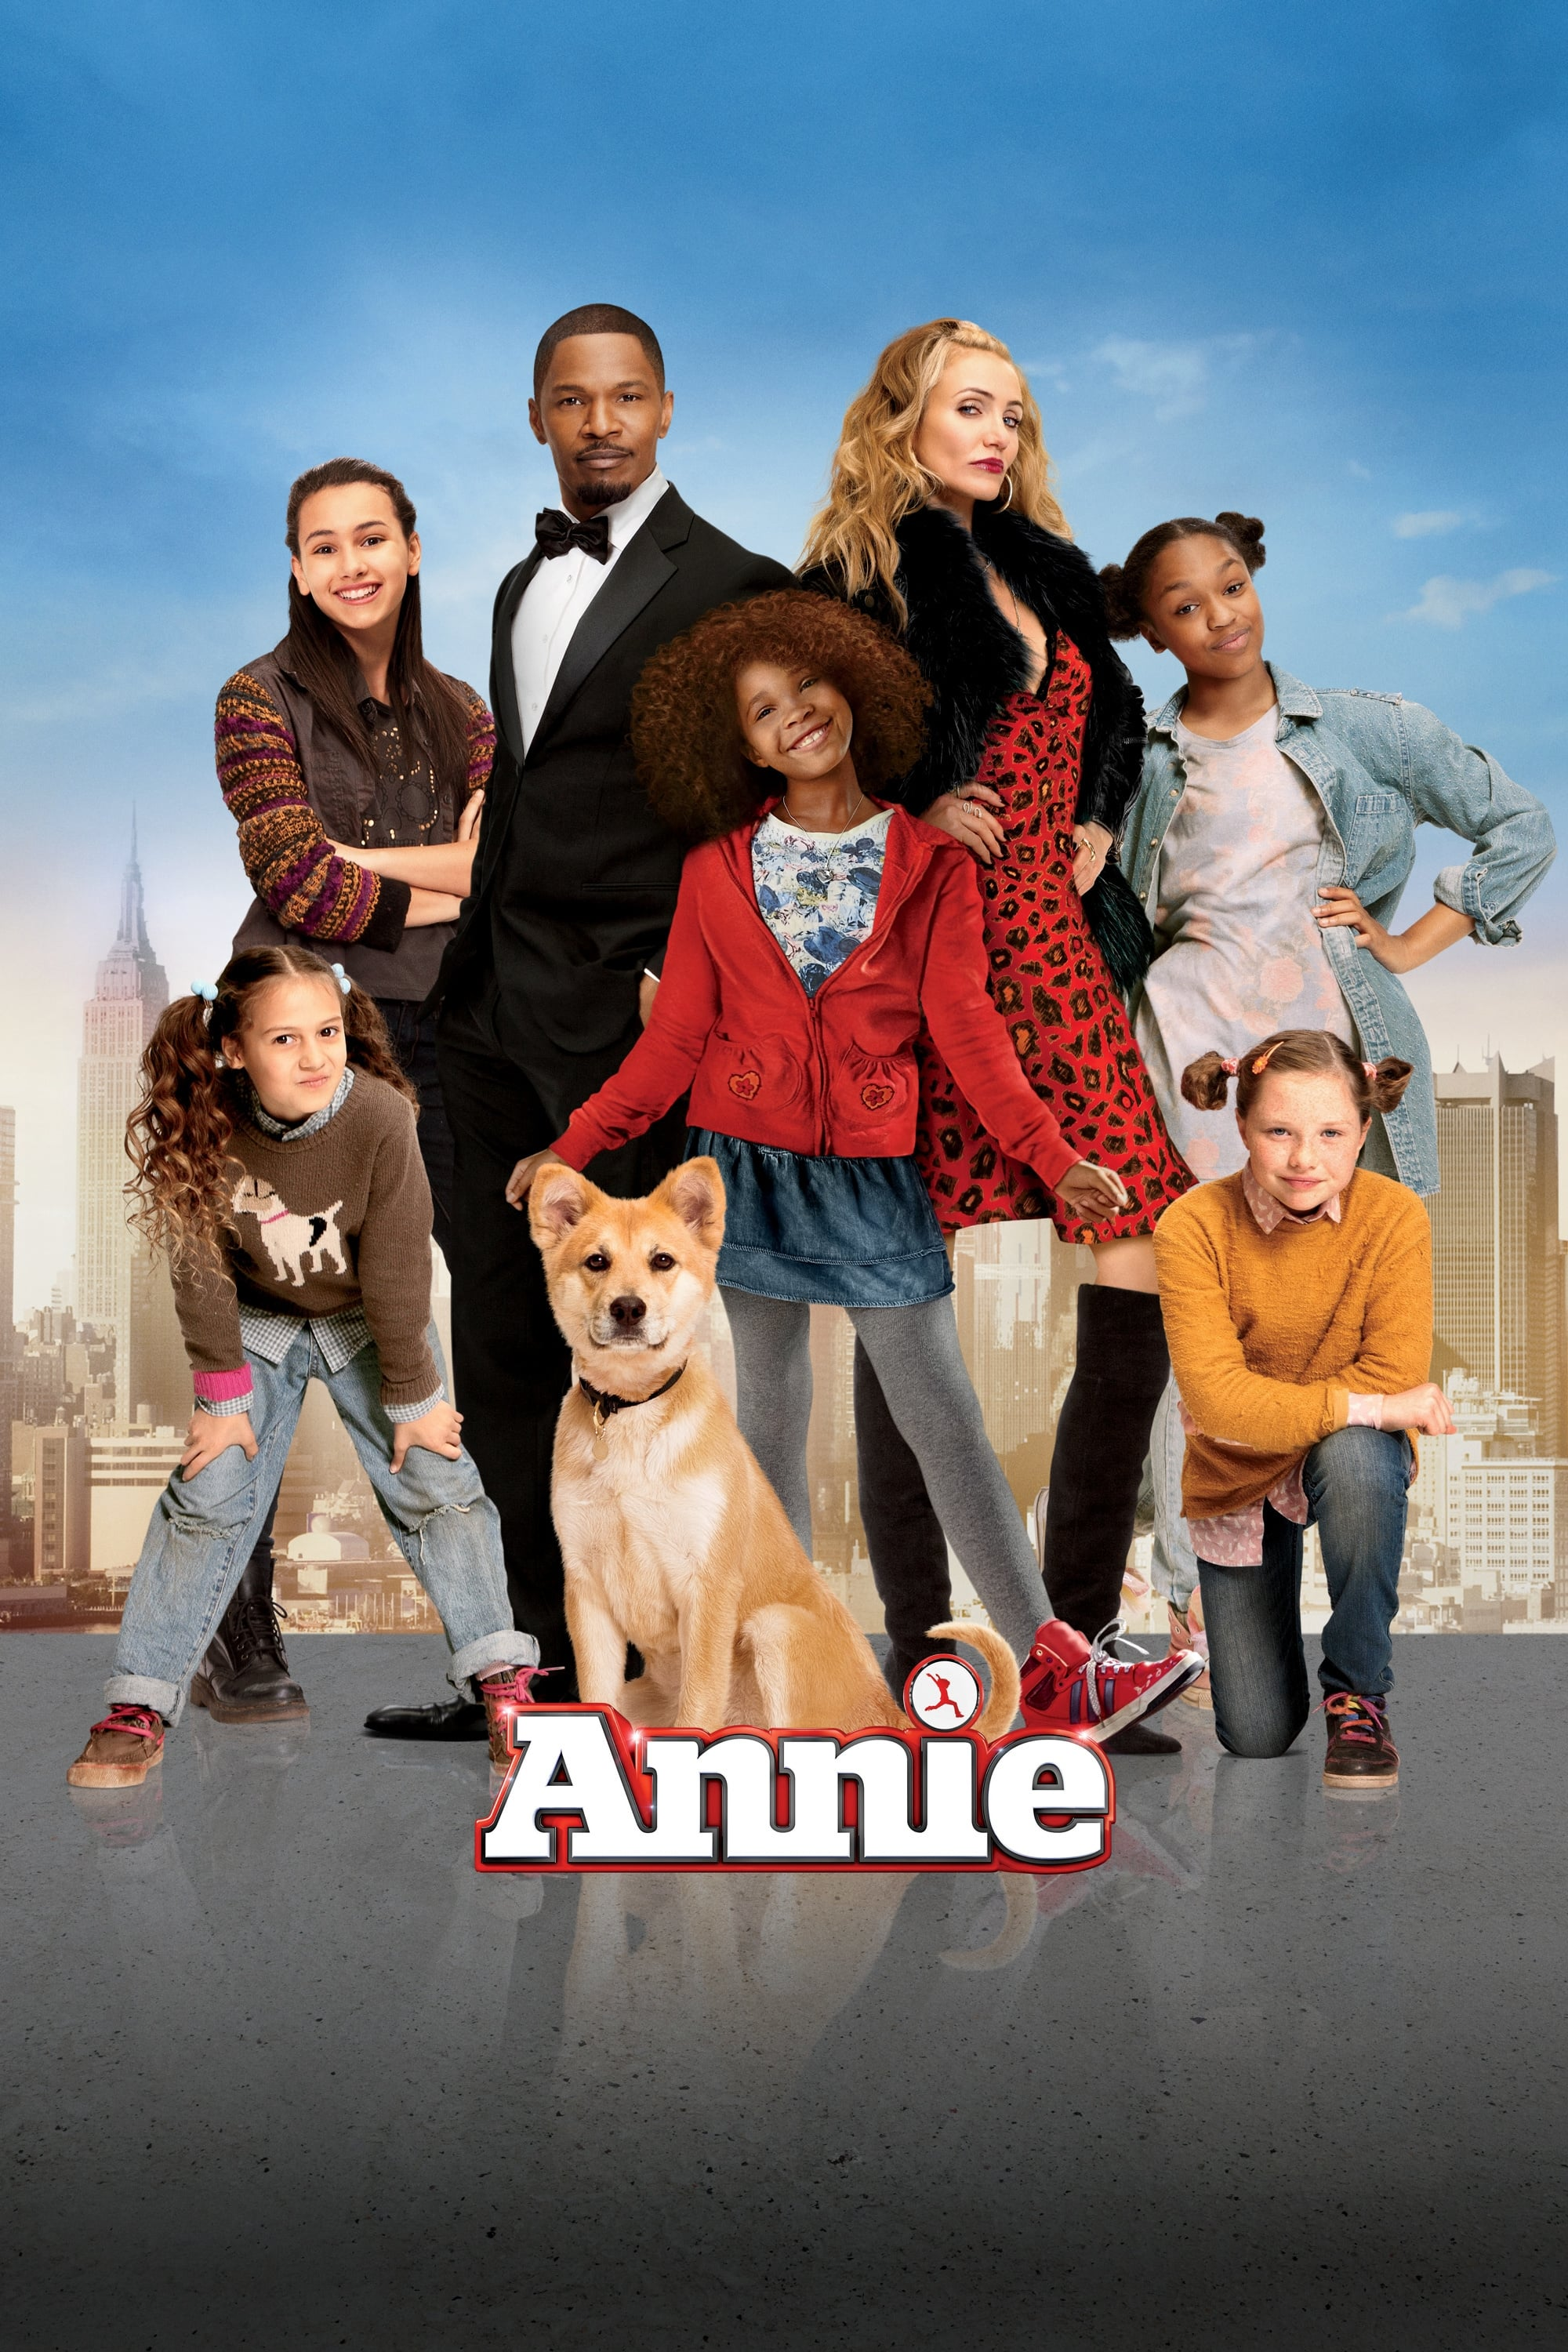 annie 2014 posters � the movie database tmdb